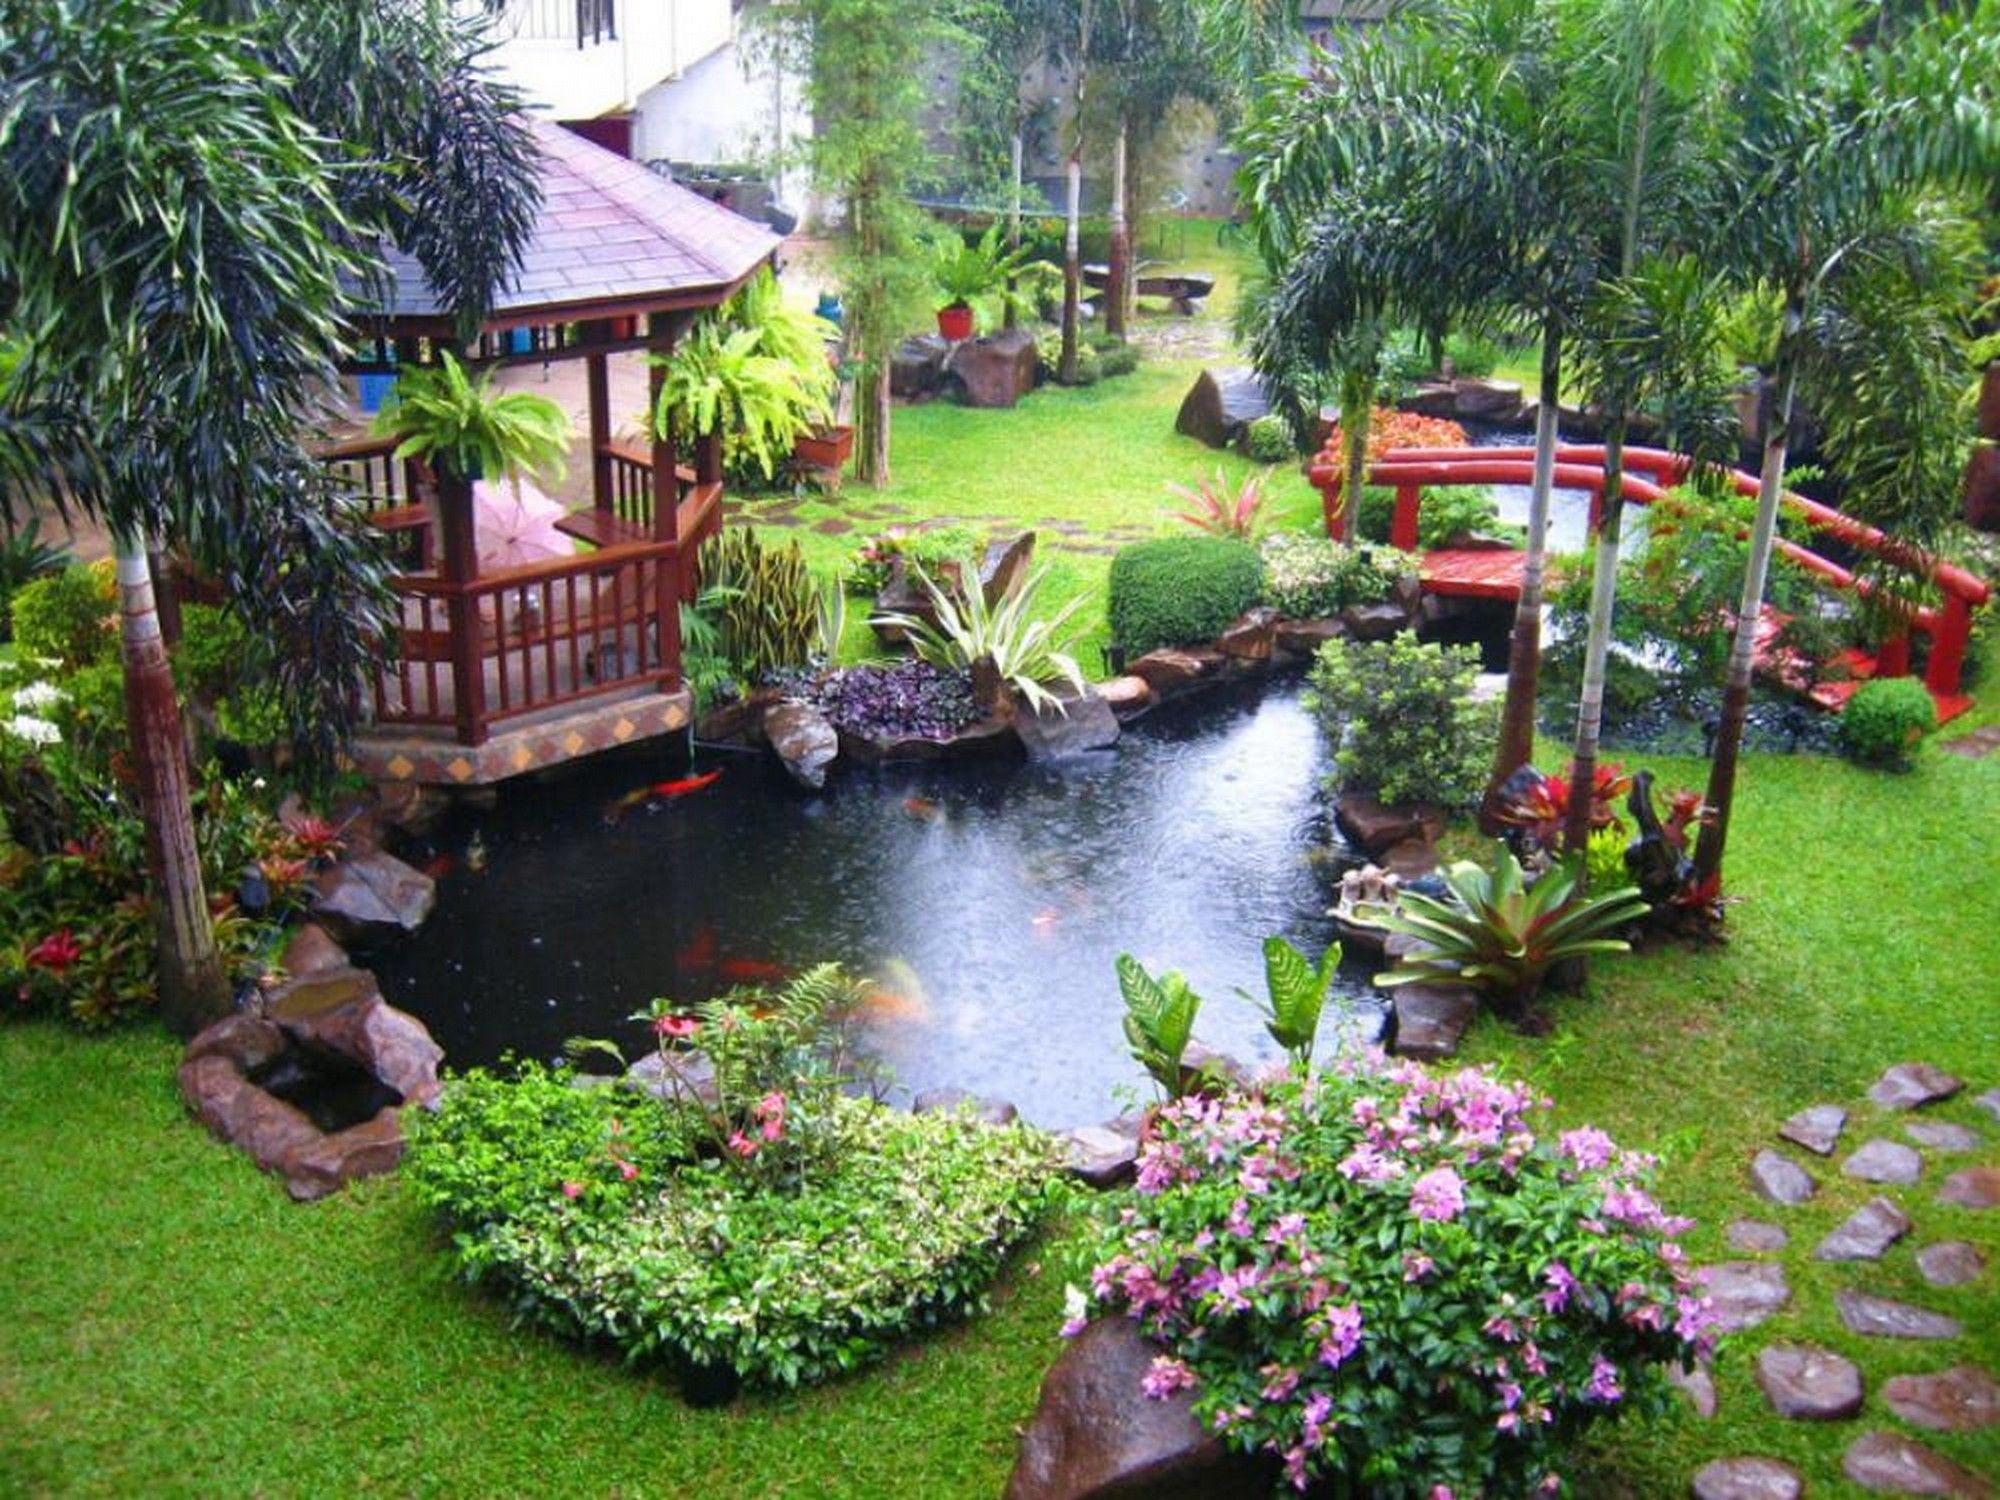 When My Husband And I Buy A House This Is Exactly How I Want My Gazebo To  Look Lol. Garden Design, Luxury Backyard Water Features Ideas With Gazebo  ...